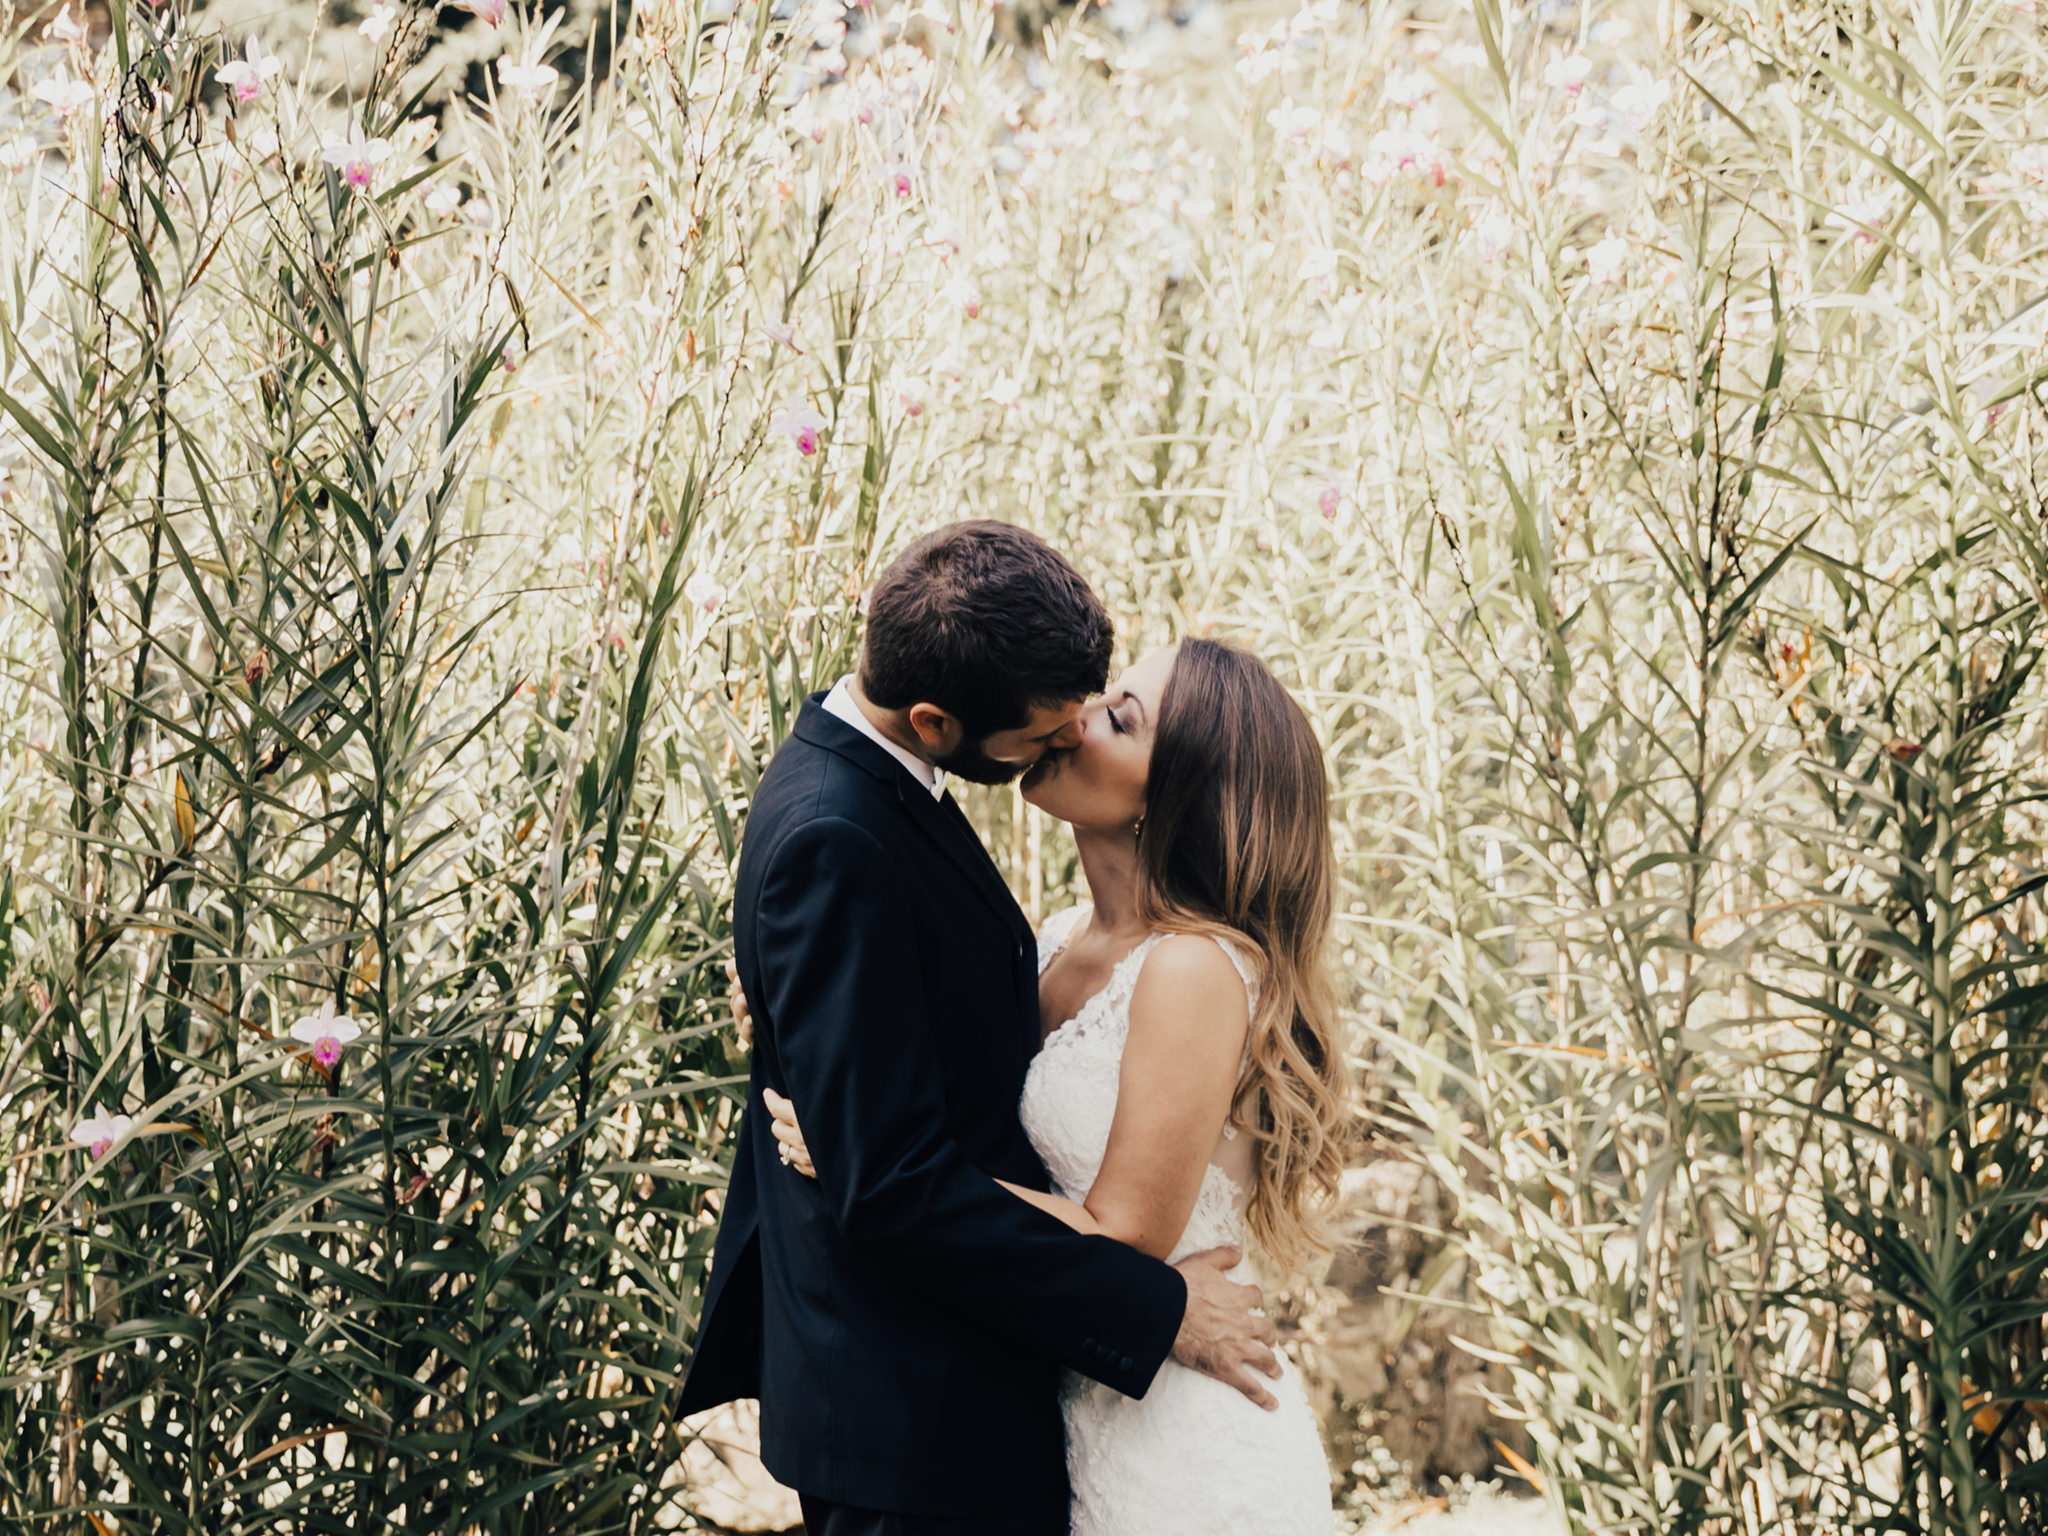 Daniela + Kristian - We are beyond happy with our pictures!Adriana and her team not only managed to capture the love and happiness we felt for each other, but they made us feel so confident and calm the moment of the